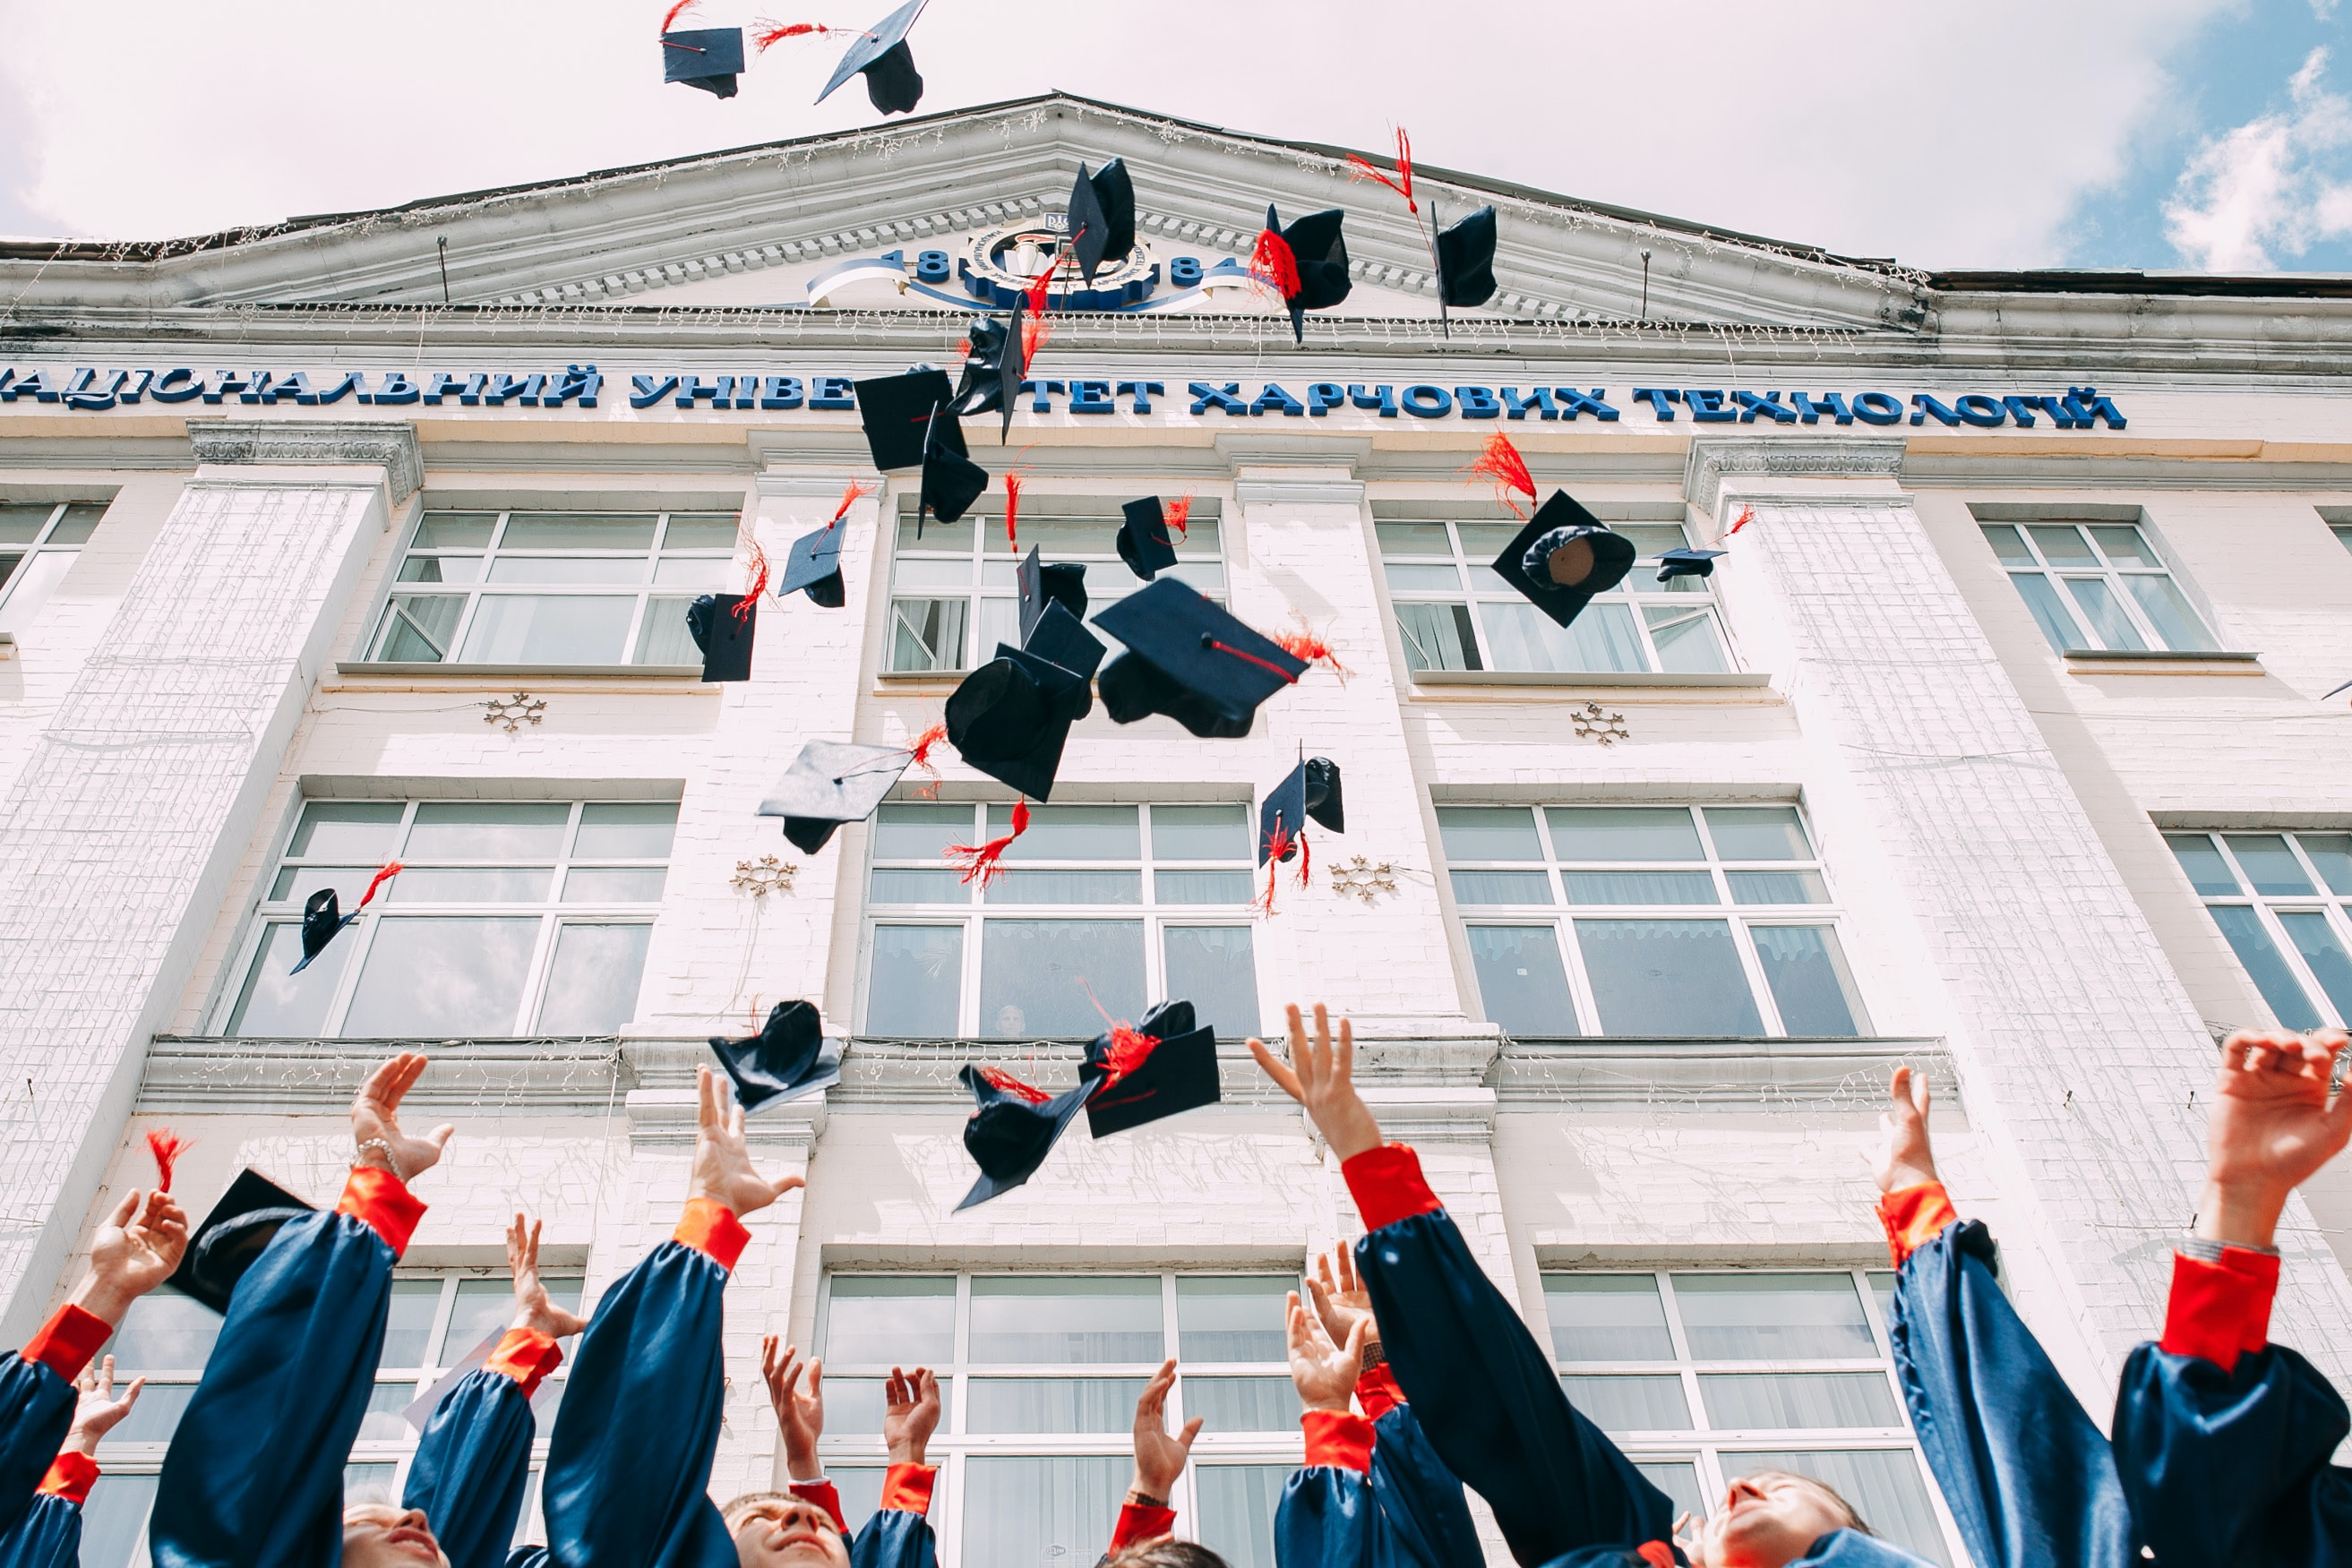 University Students Throwing Hats In Air